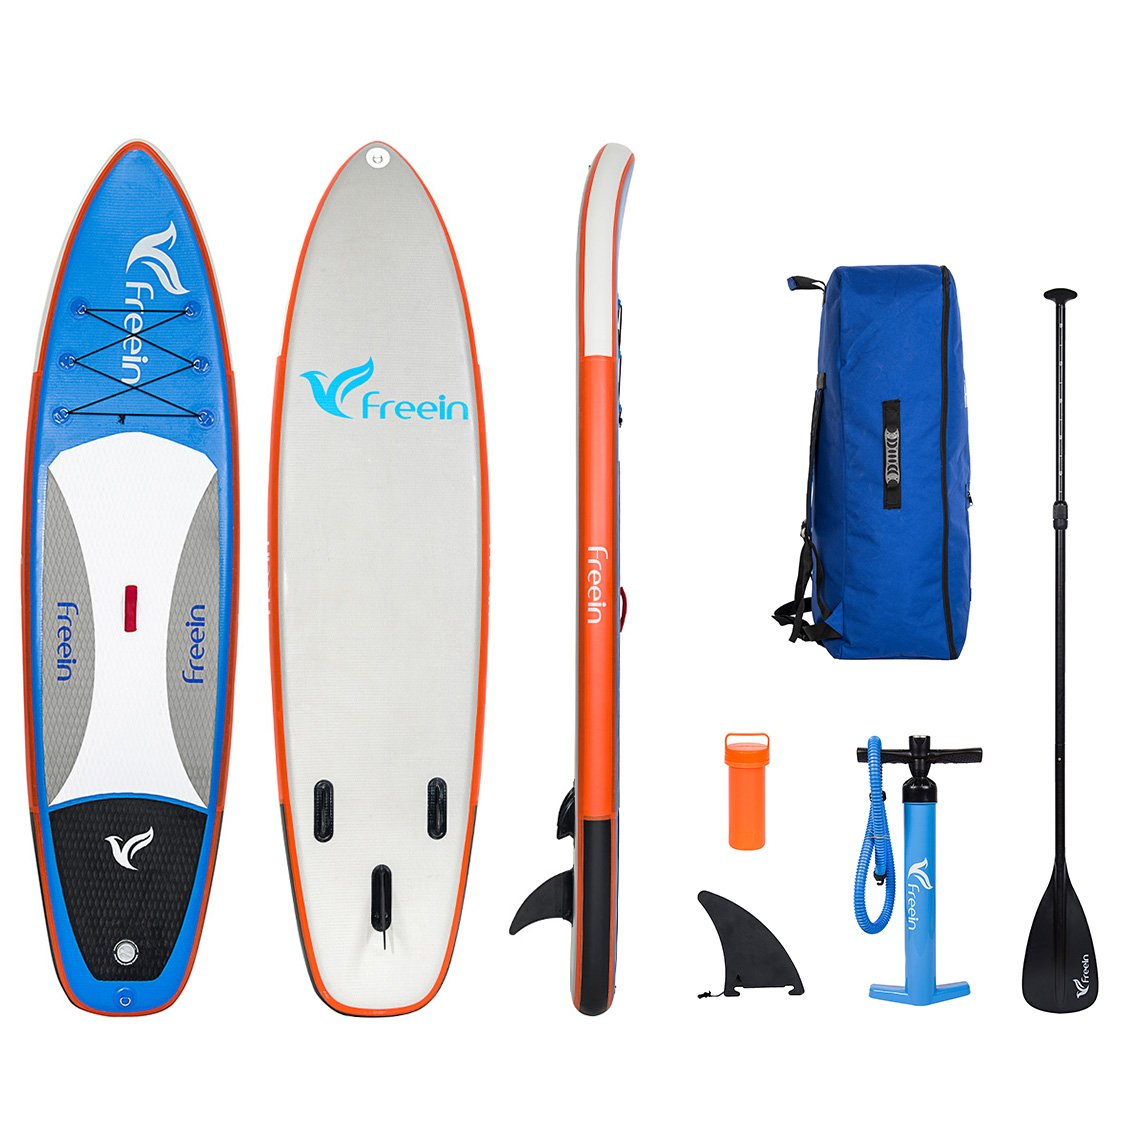 Freein Inflatable Stand Up Paddle Board, SUP Board of 10'8'' Long 32'' Wide 6'' Thick with Aluminum Paddle, Removable Fin, Hand Pump, Leash, Blue Package by Freein